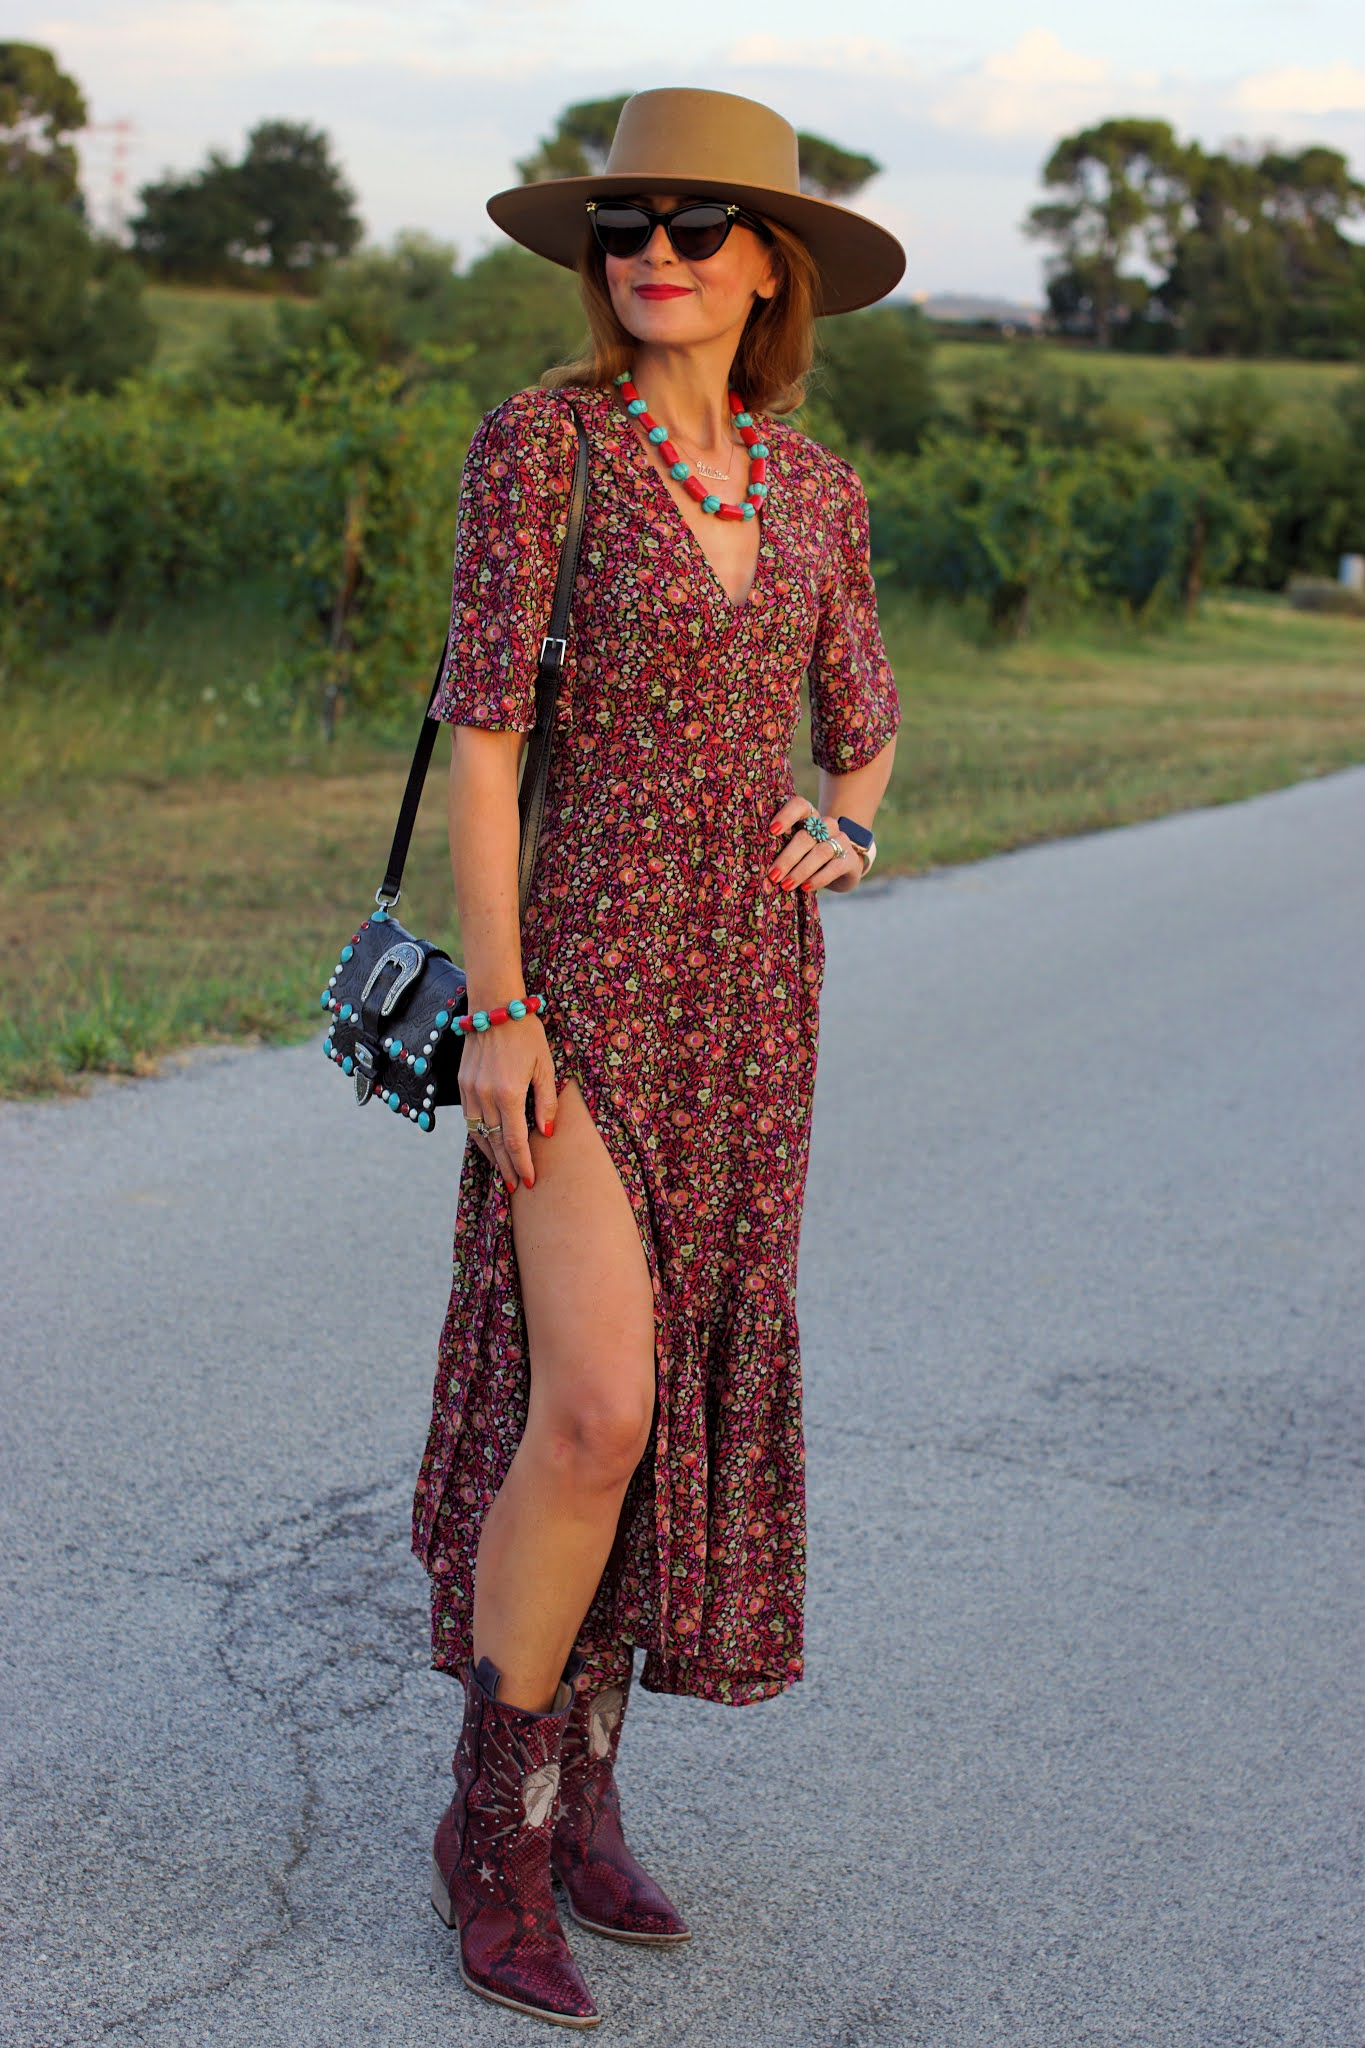 A transitional western style outfit with a ba&sh Paris dress and Lack of Color hat